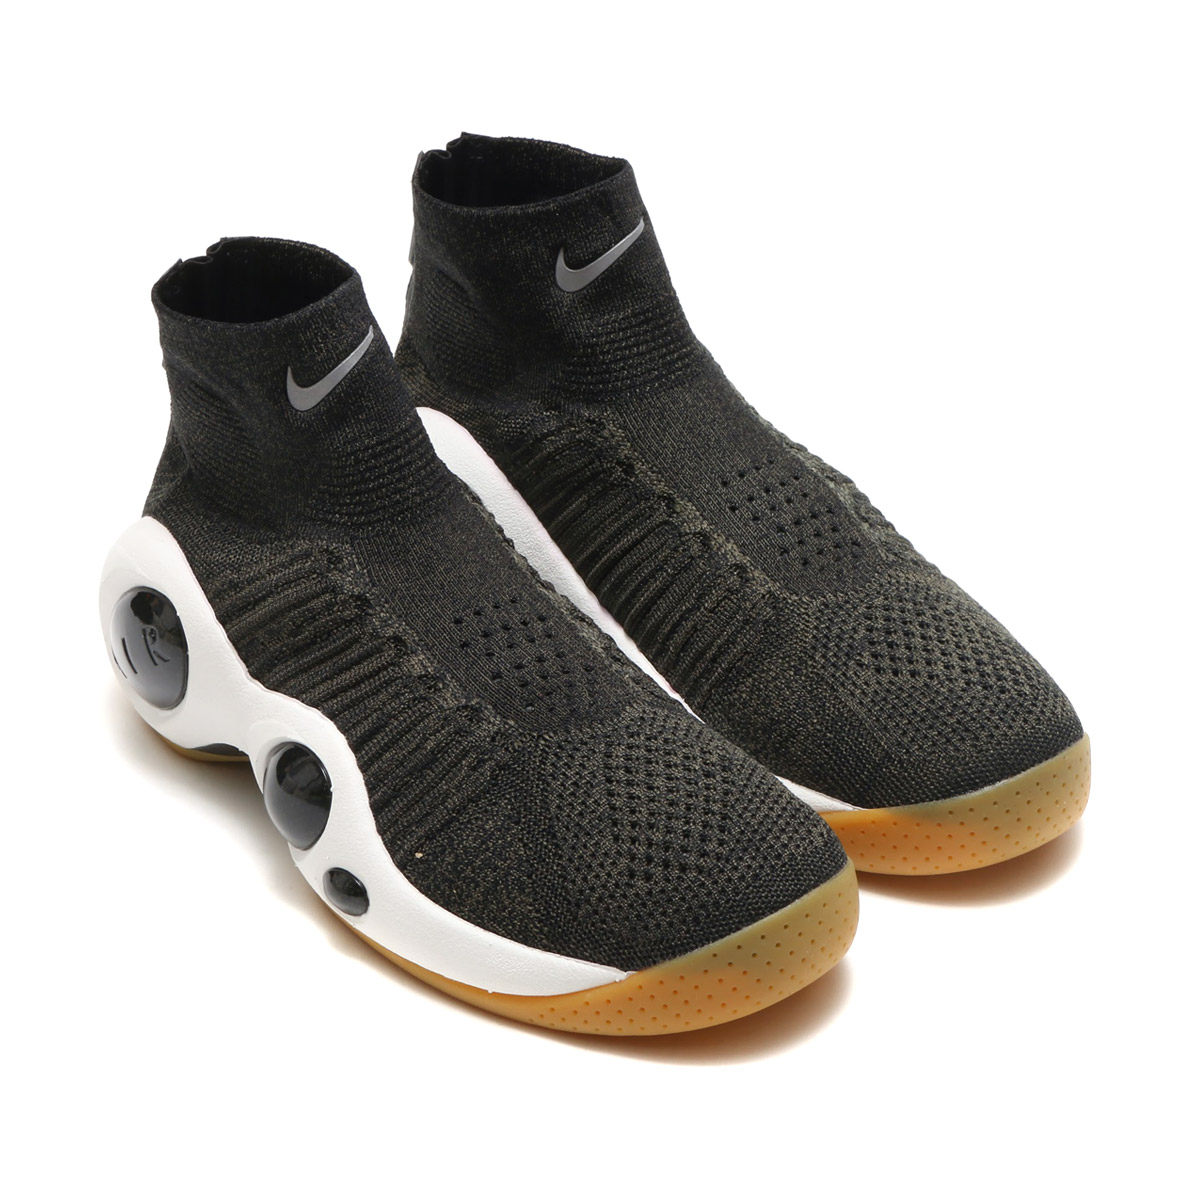 af37f14ebe0d72 Zoom flight 95 gave off presence to stand out by a bold and advanced  design. After time more than 20 years